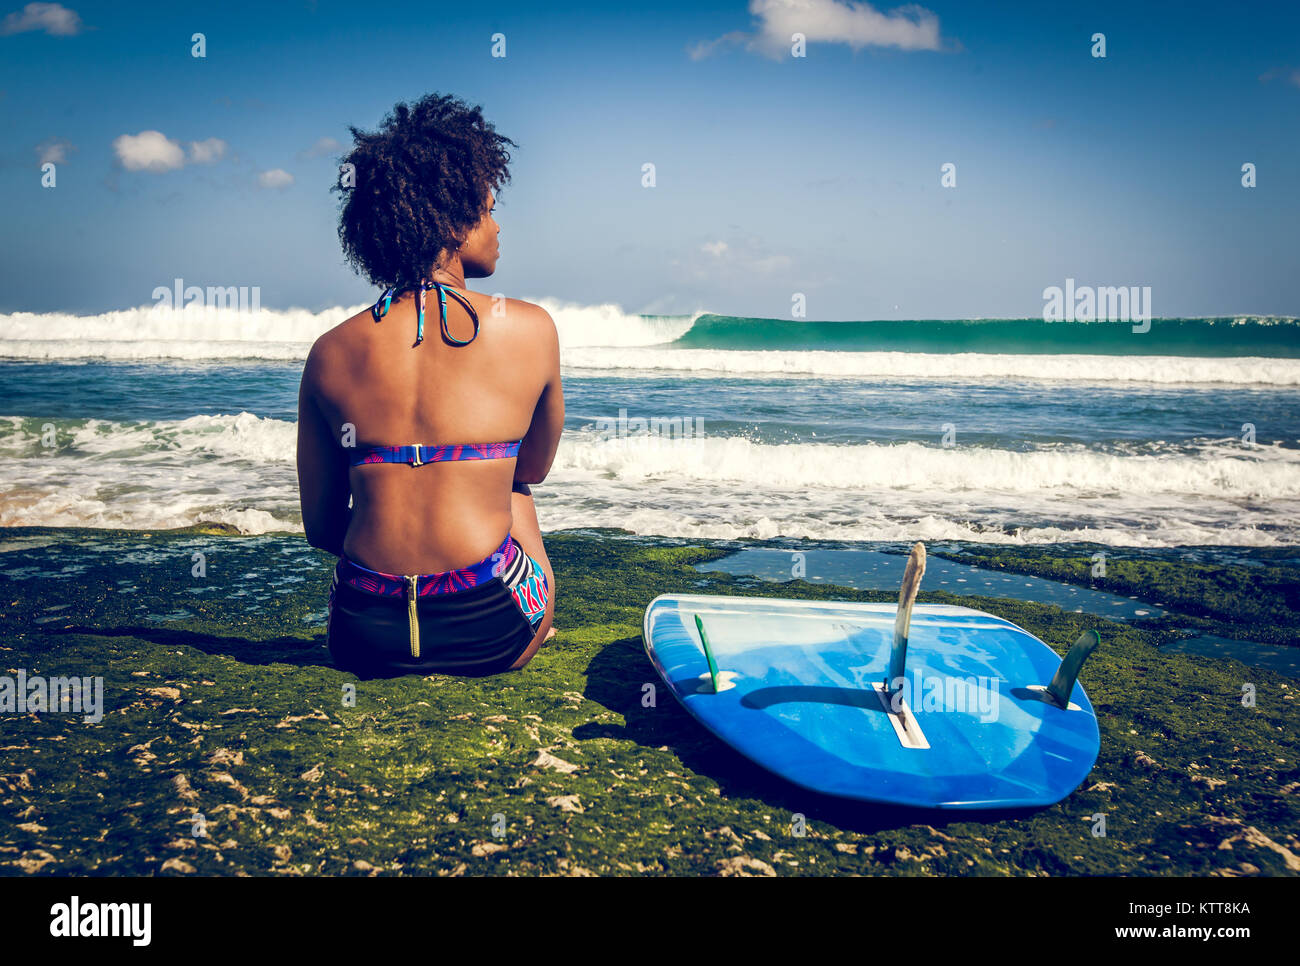 Surfer girl with afro hairstyle sitting next to blue surfboard on the green coral reef in front of a breathtaking - Stock Image